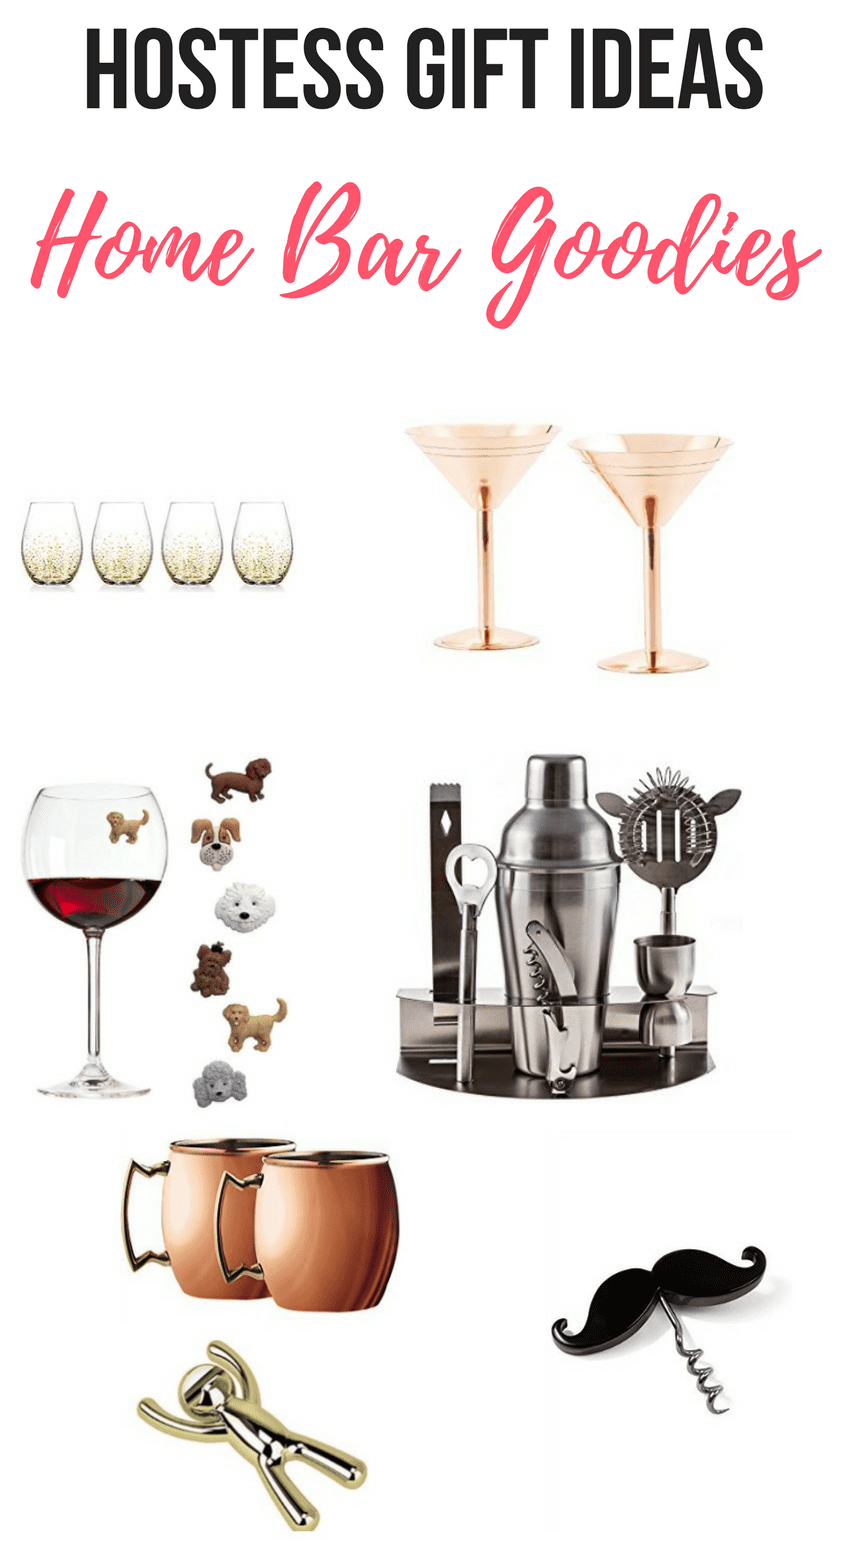 Days Of Amazing Gift Ideas Day Home Bar Goodies Mom Fabulous